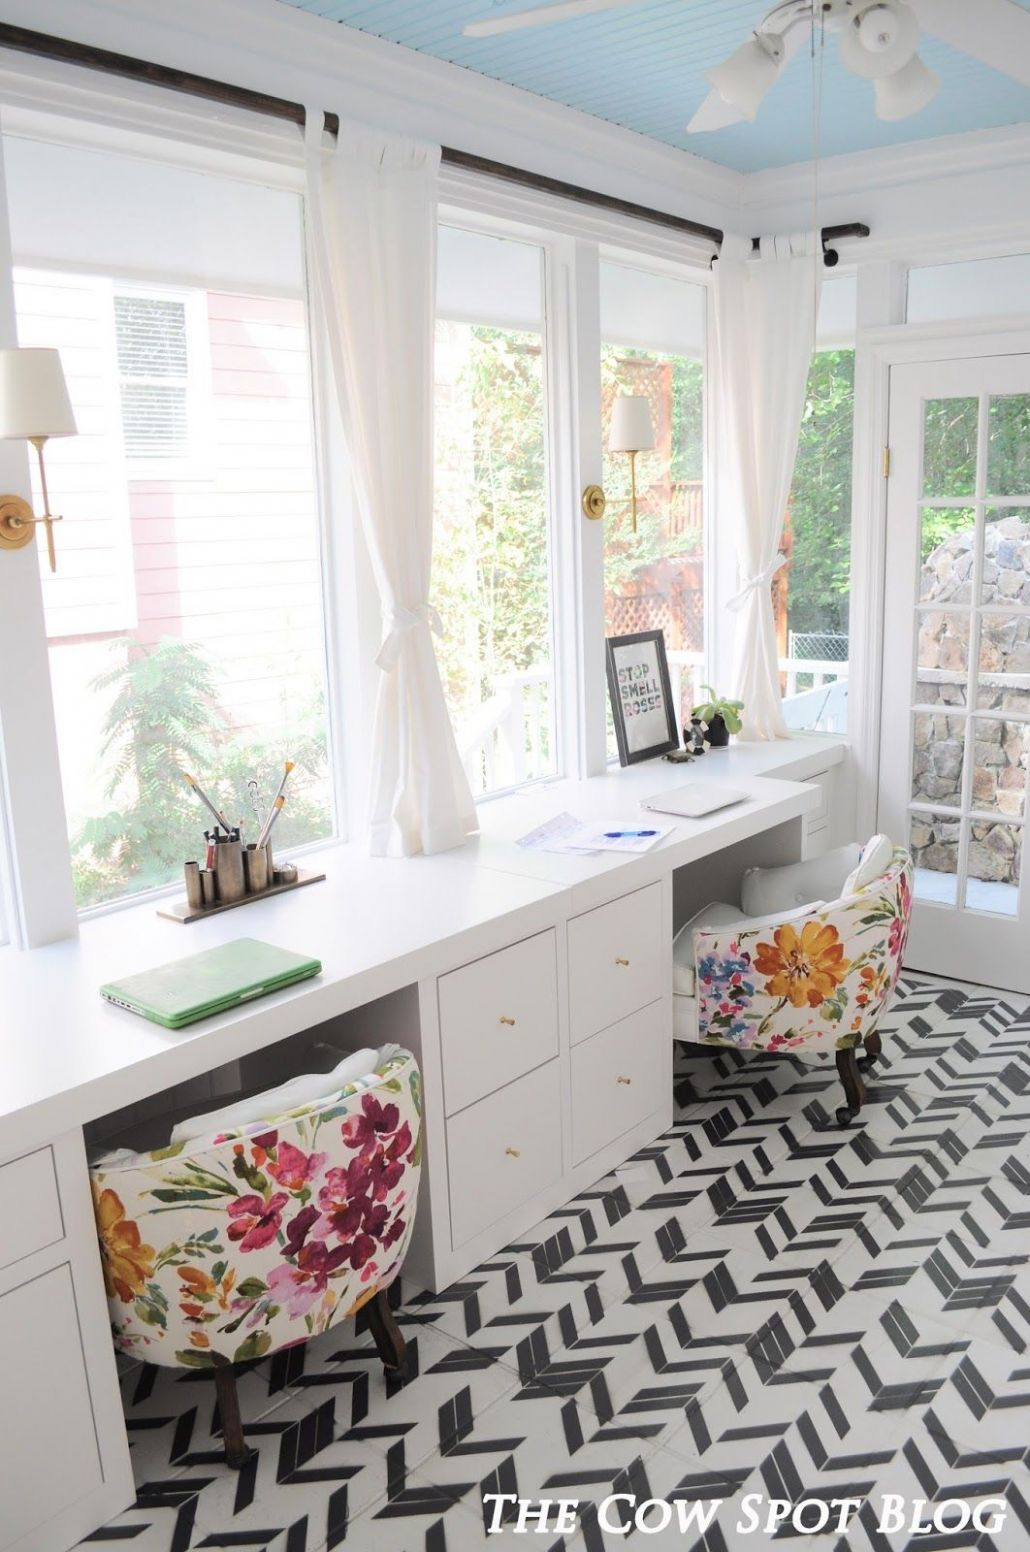 Sunroom Turned Home Office Reveal (With images) | Home office ..